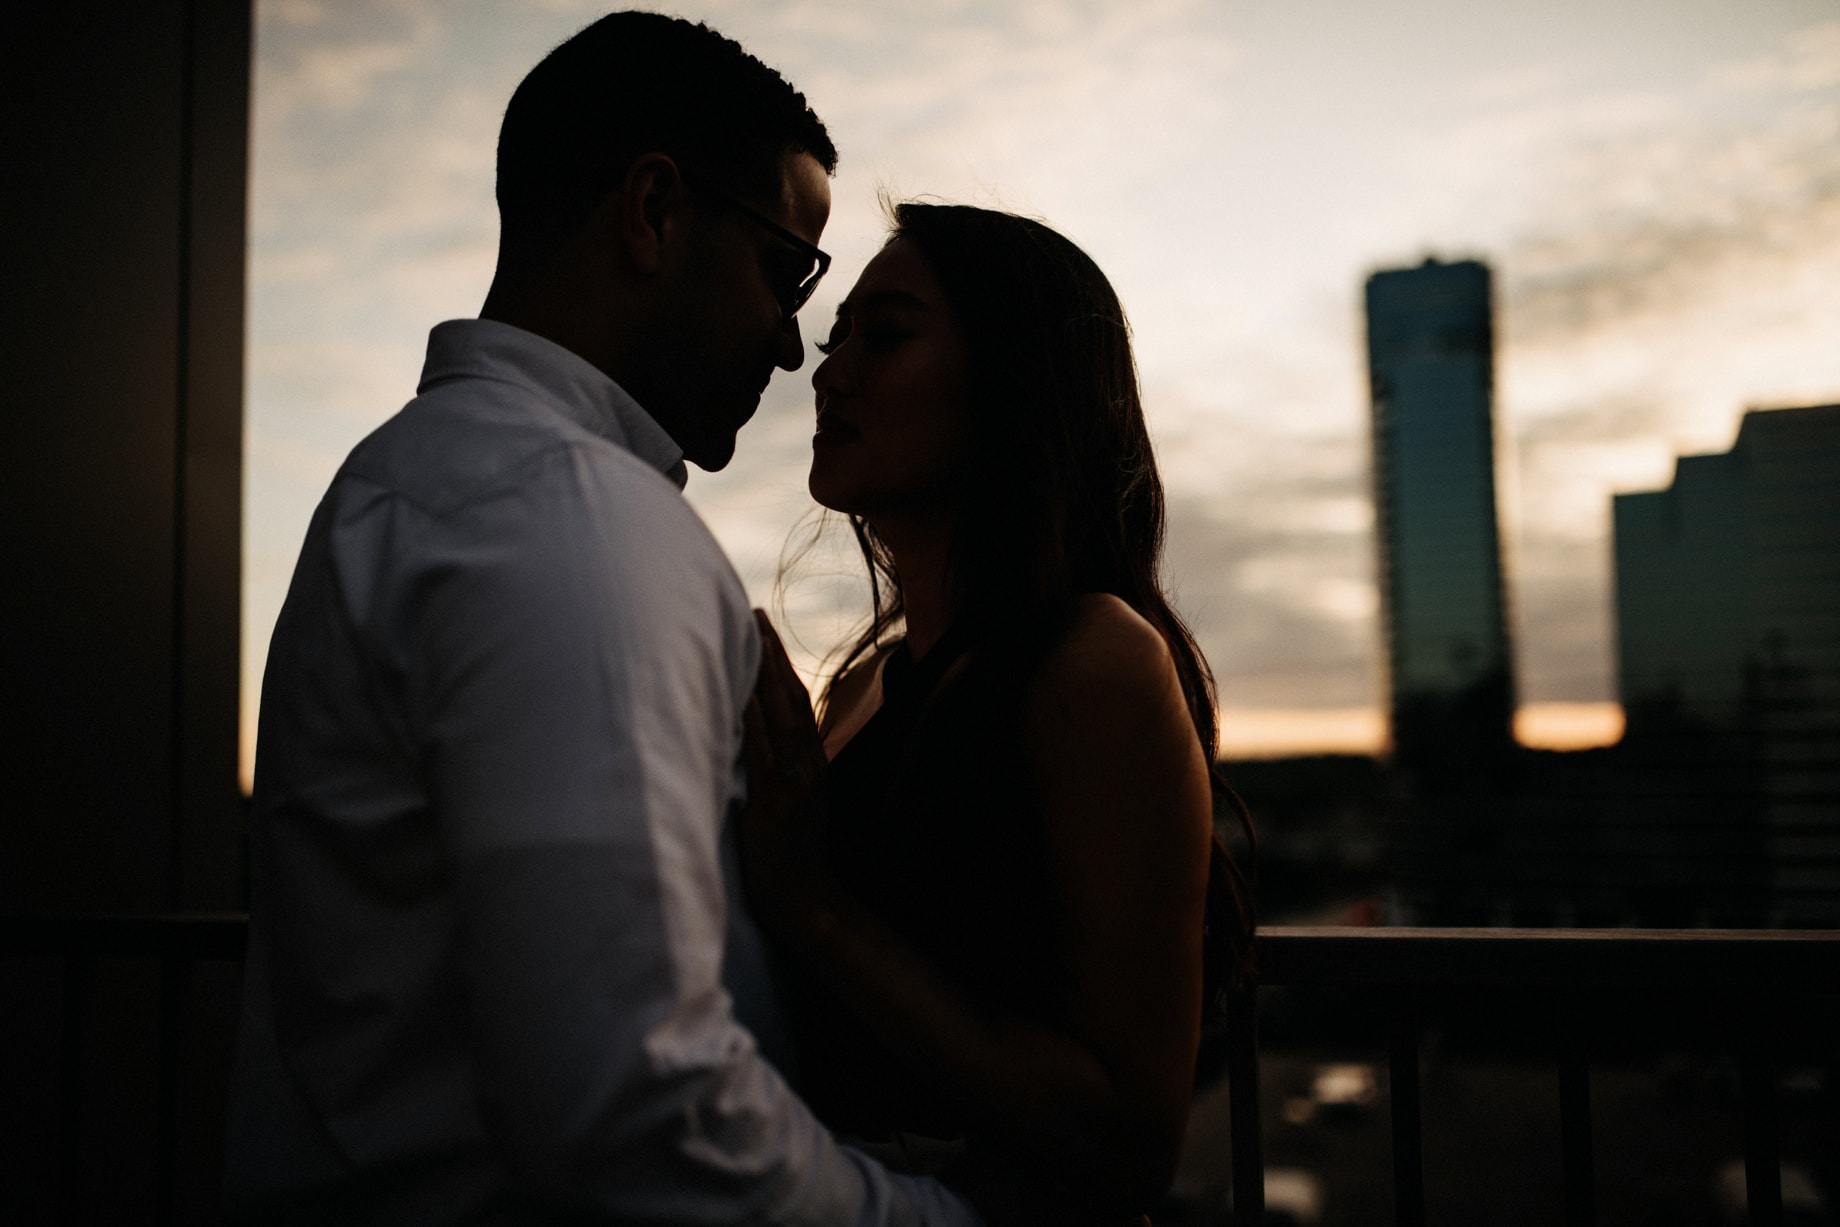 engagement photos on a rooftop in grand rapids at sunset